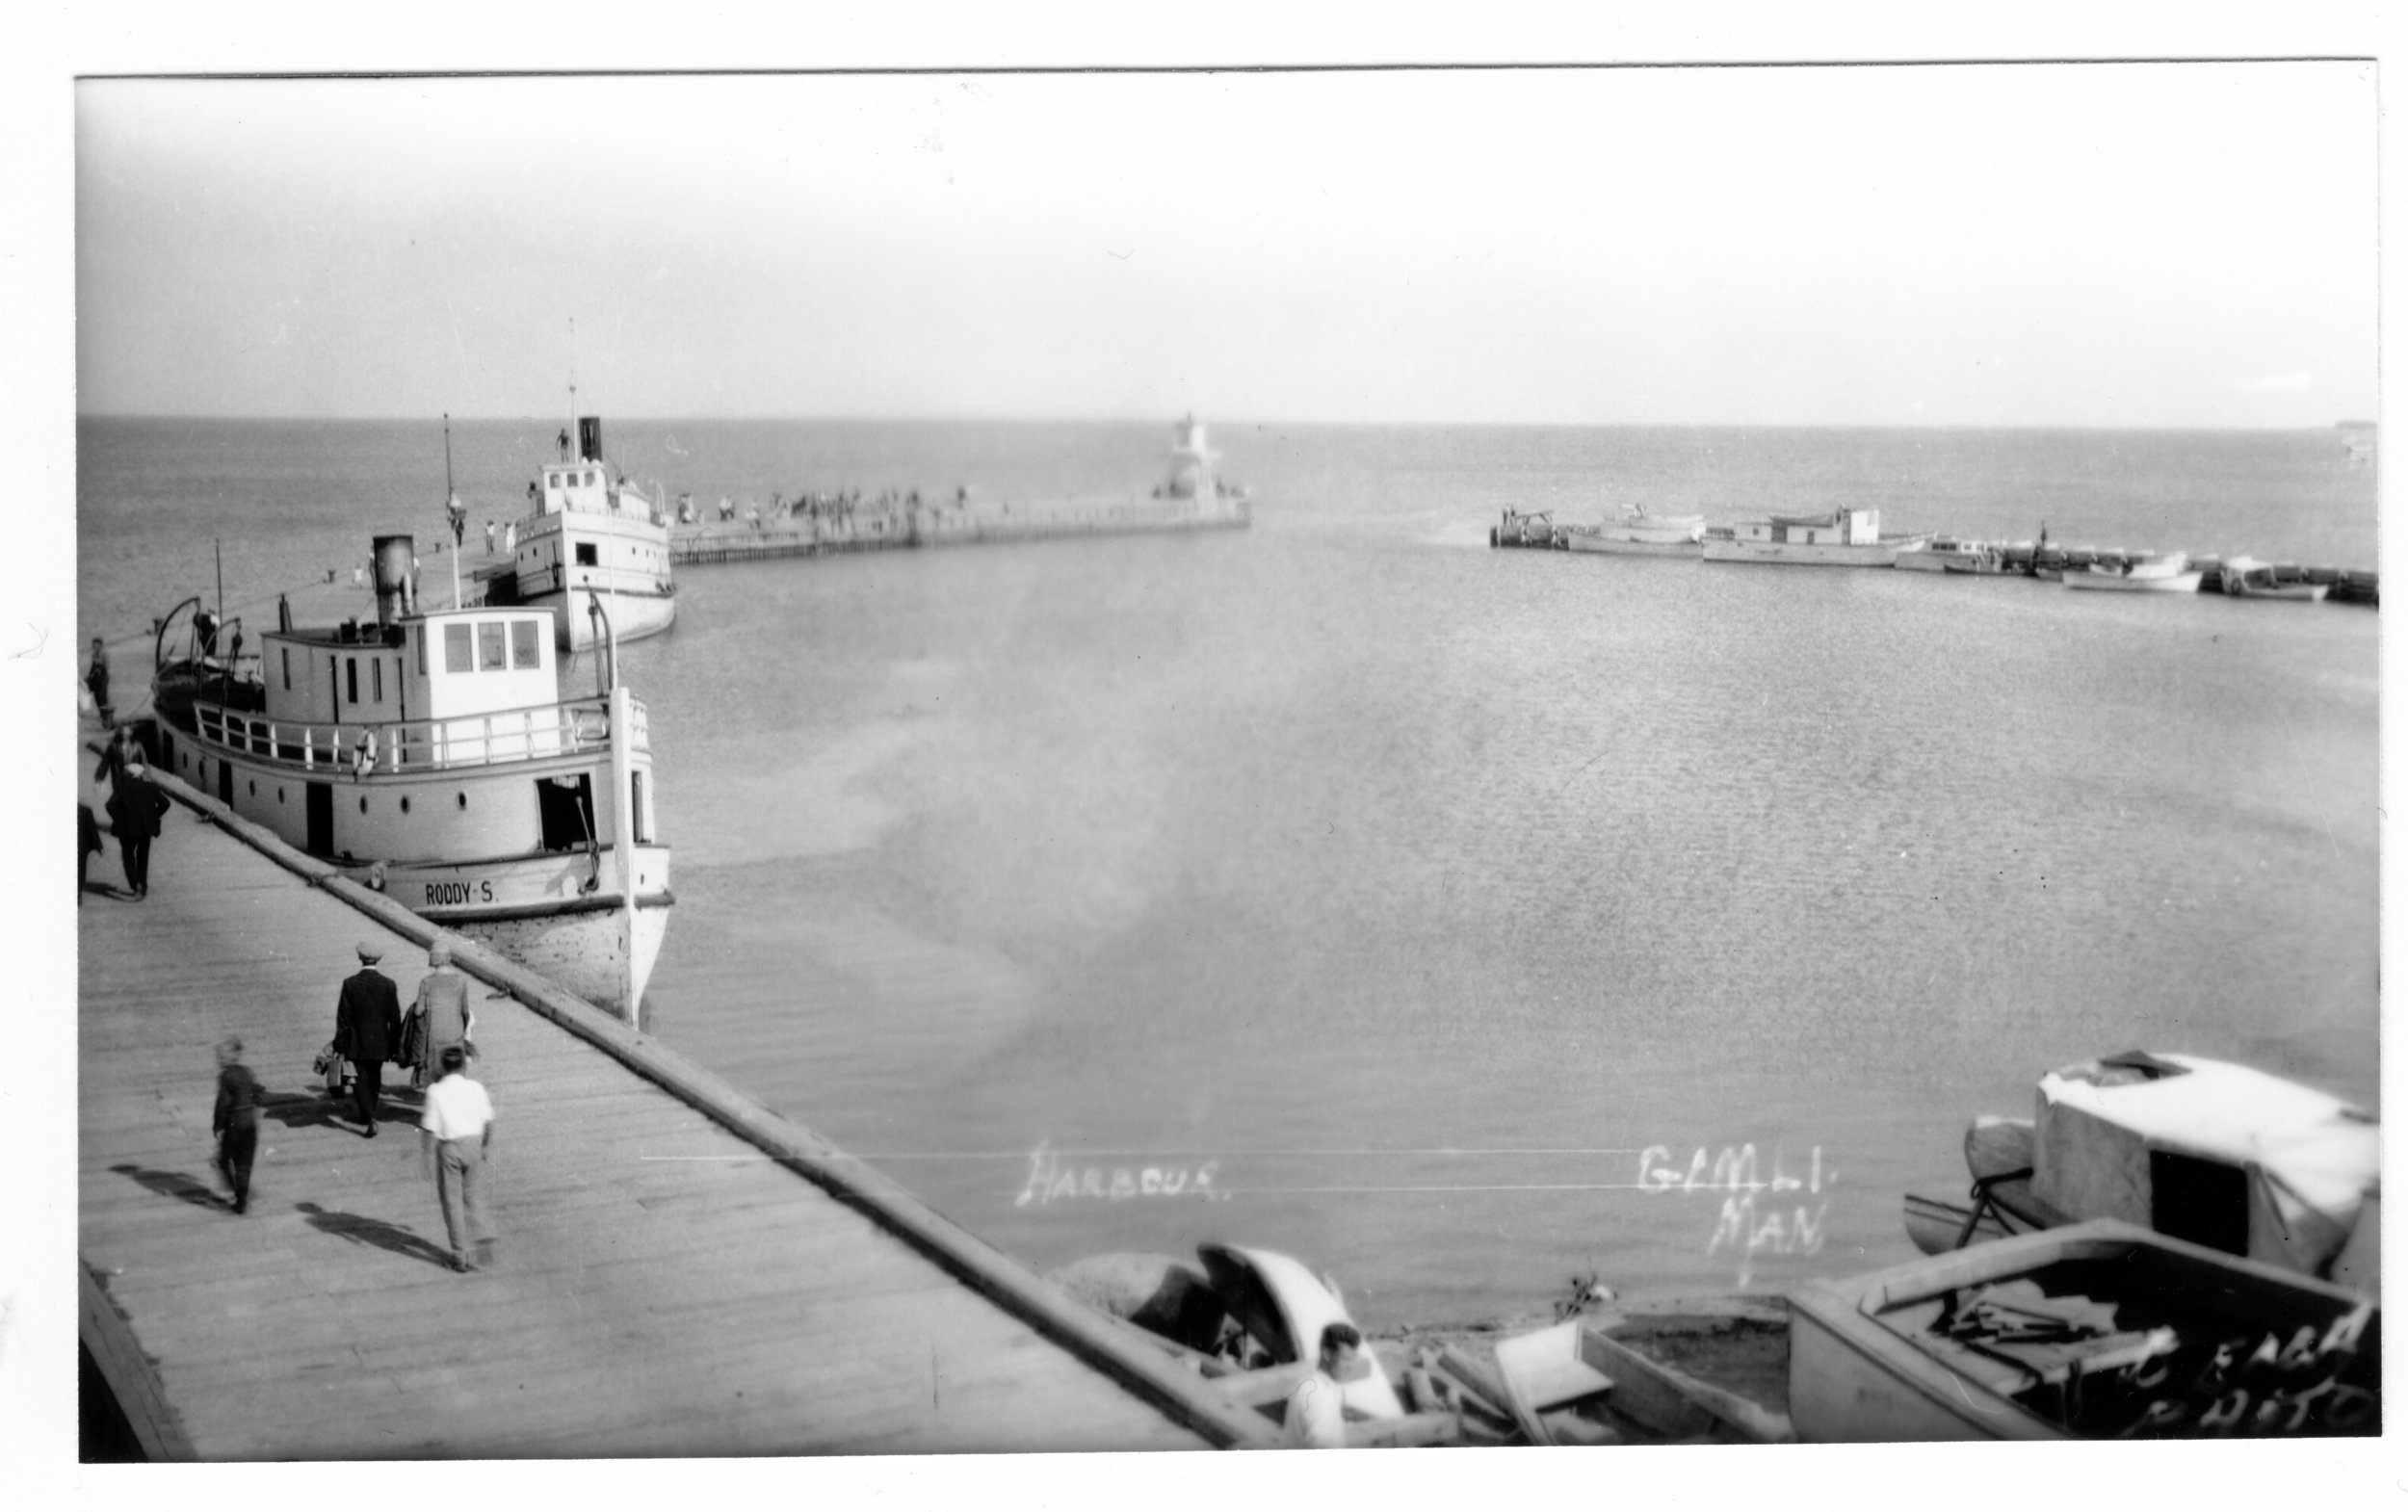 1920s Harbour w the Roddy S 01.jpg